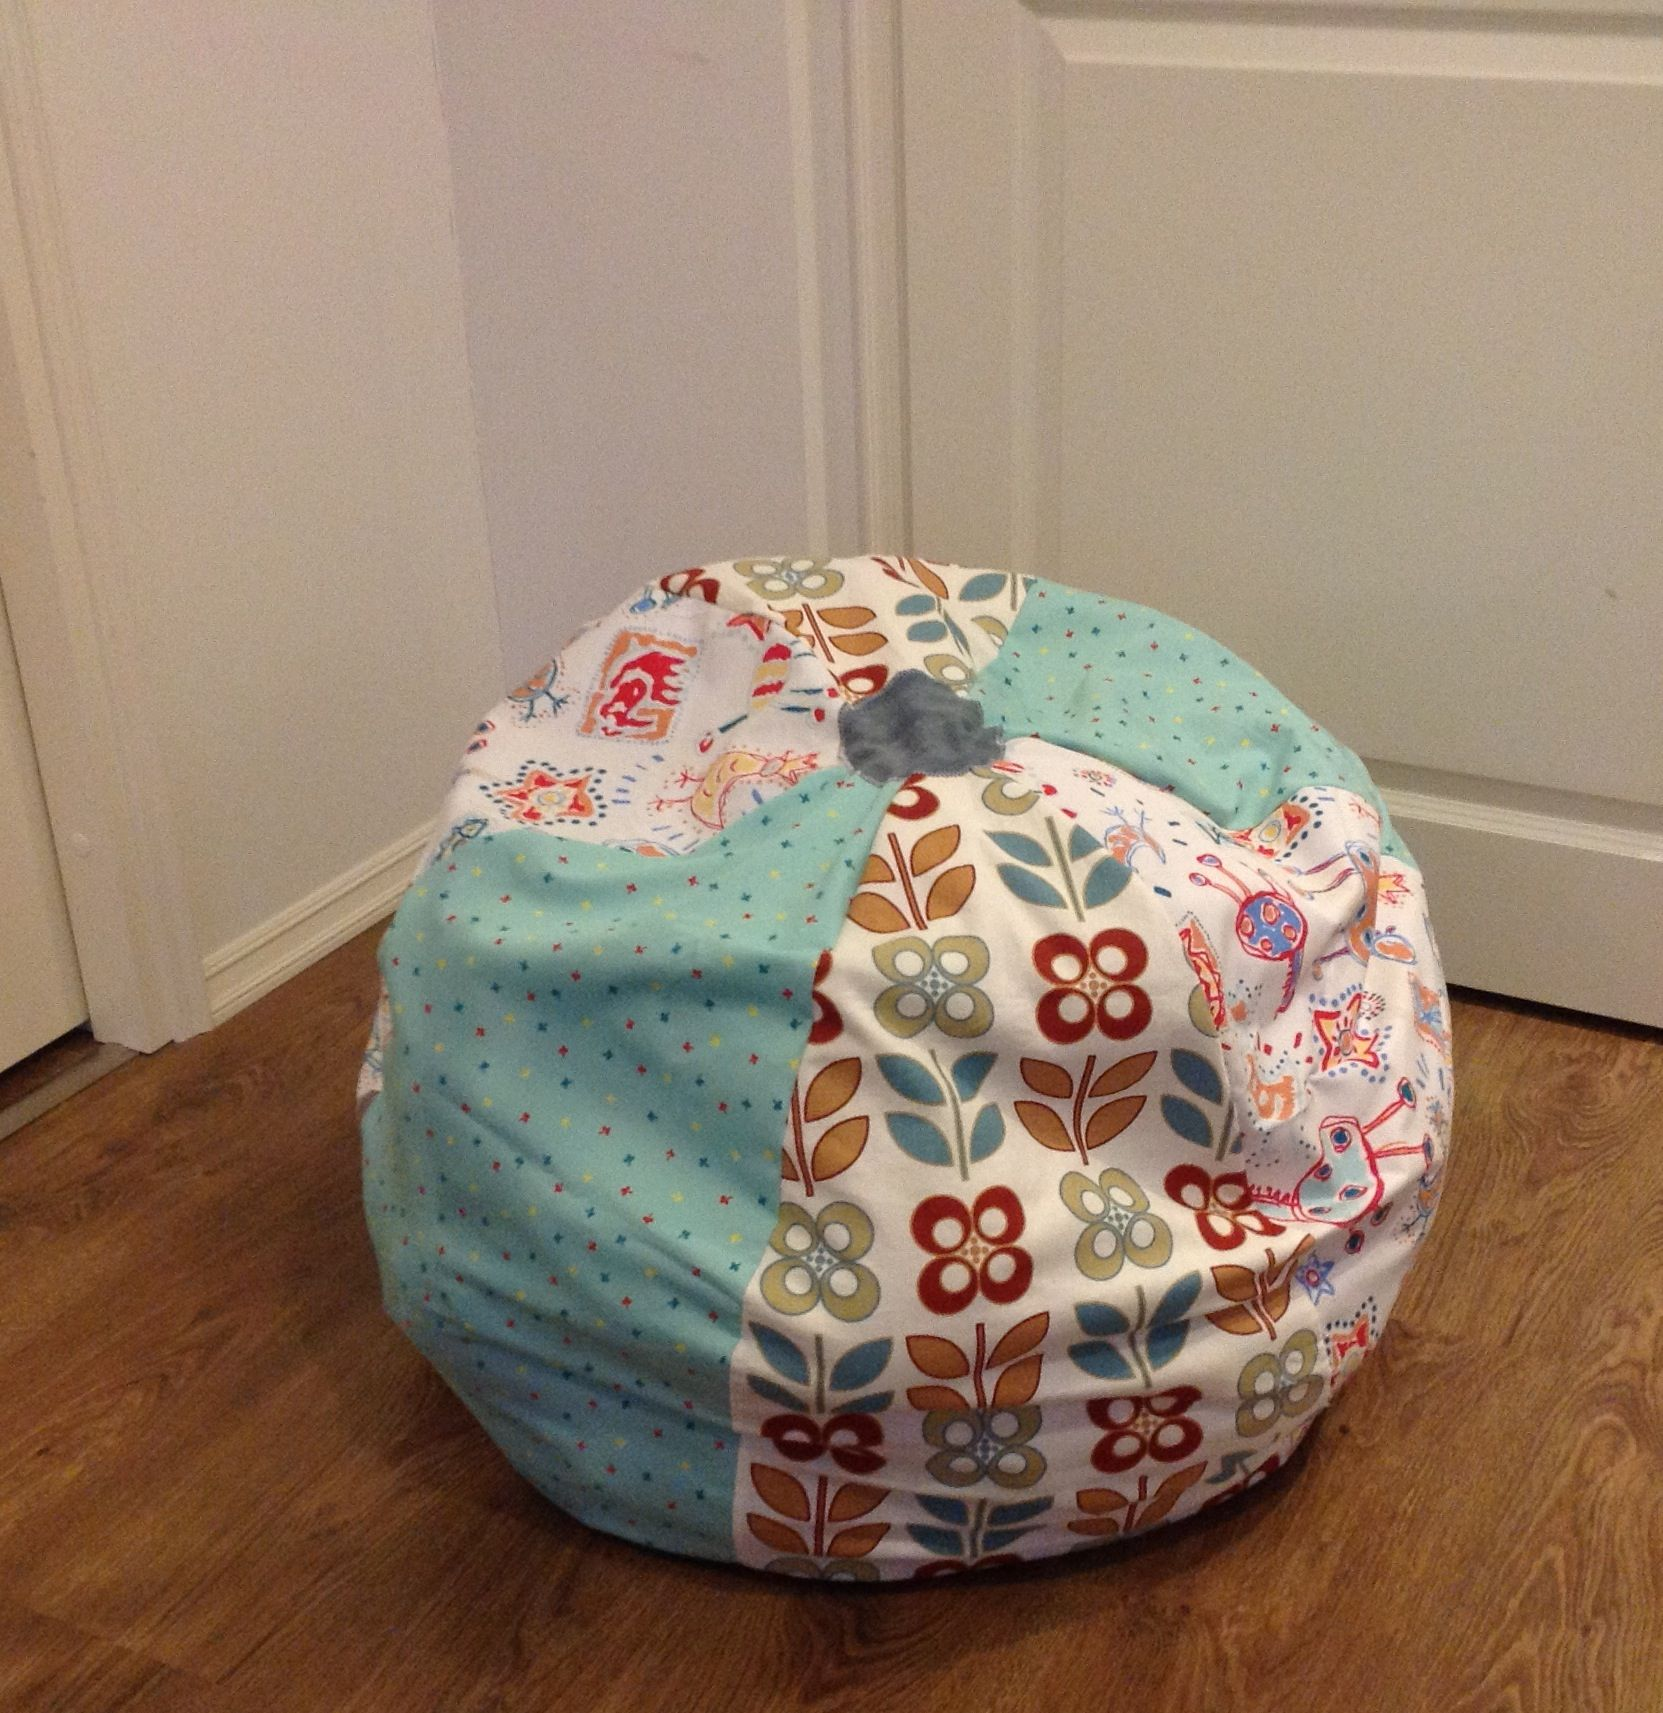 Bean Bag Chair Diy Stuffed Animal Storage With A Zipper E G Bean Bag